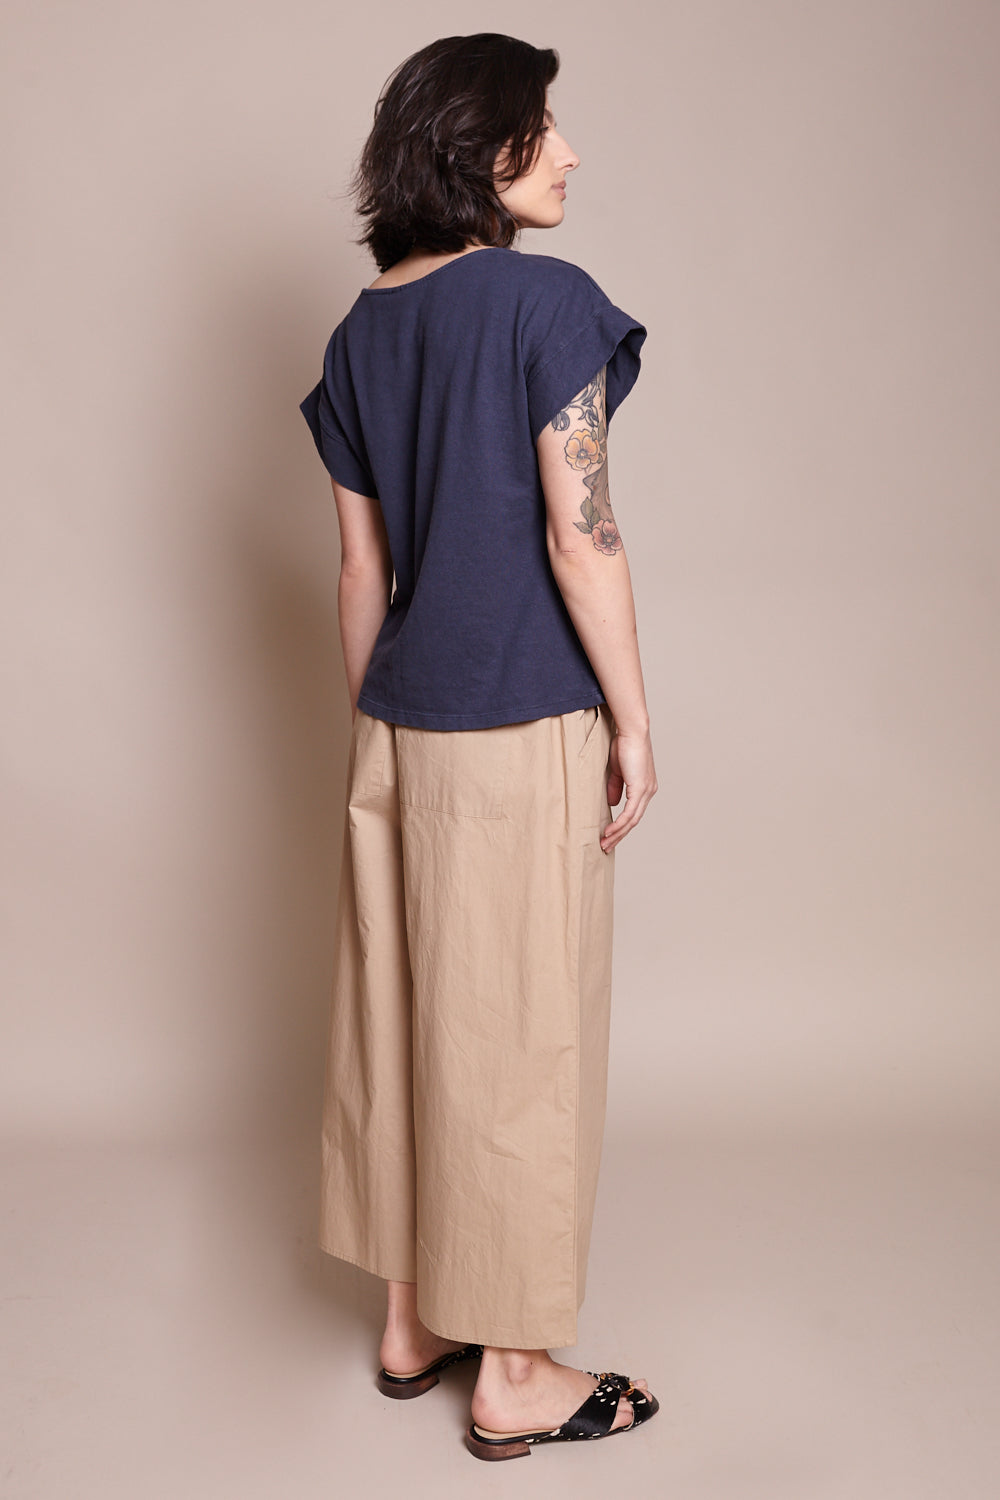 Taos Top in Navy